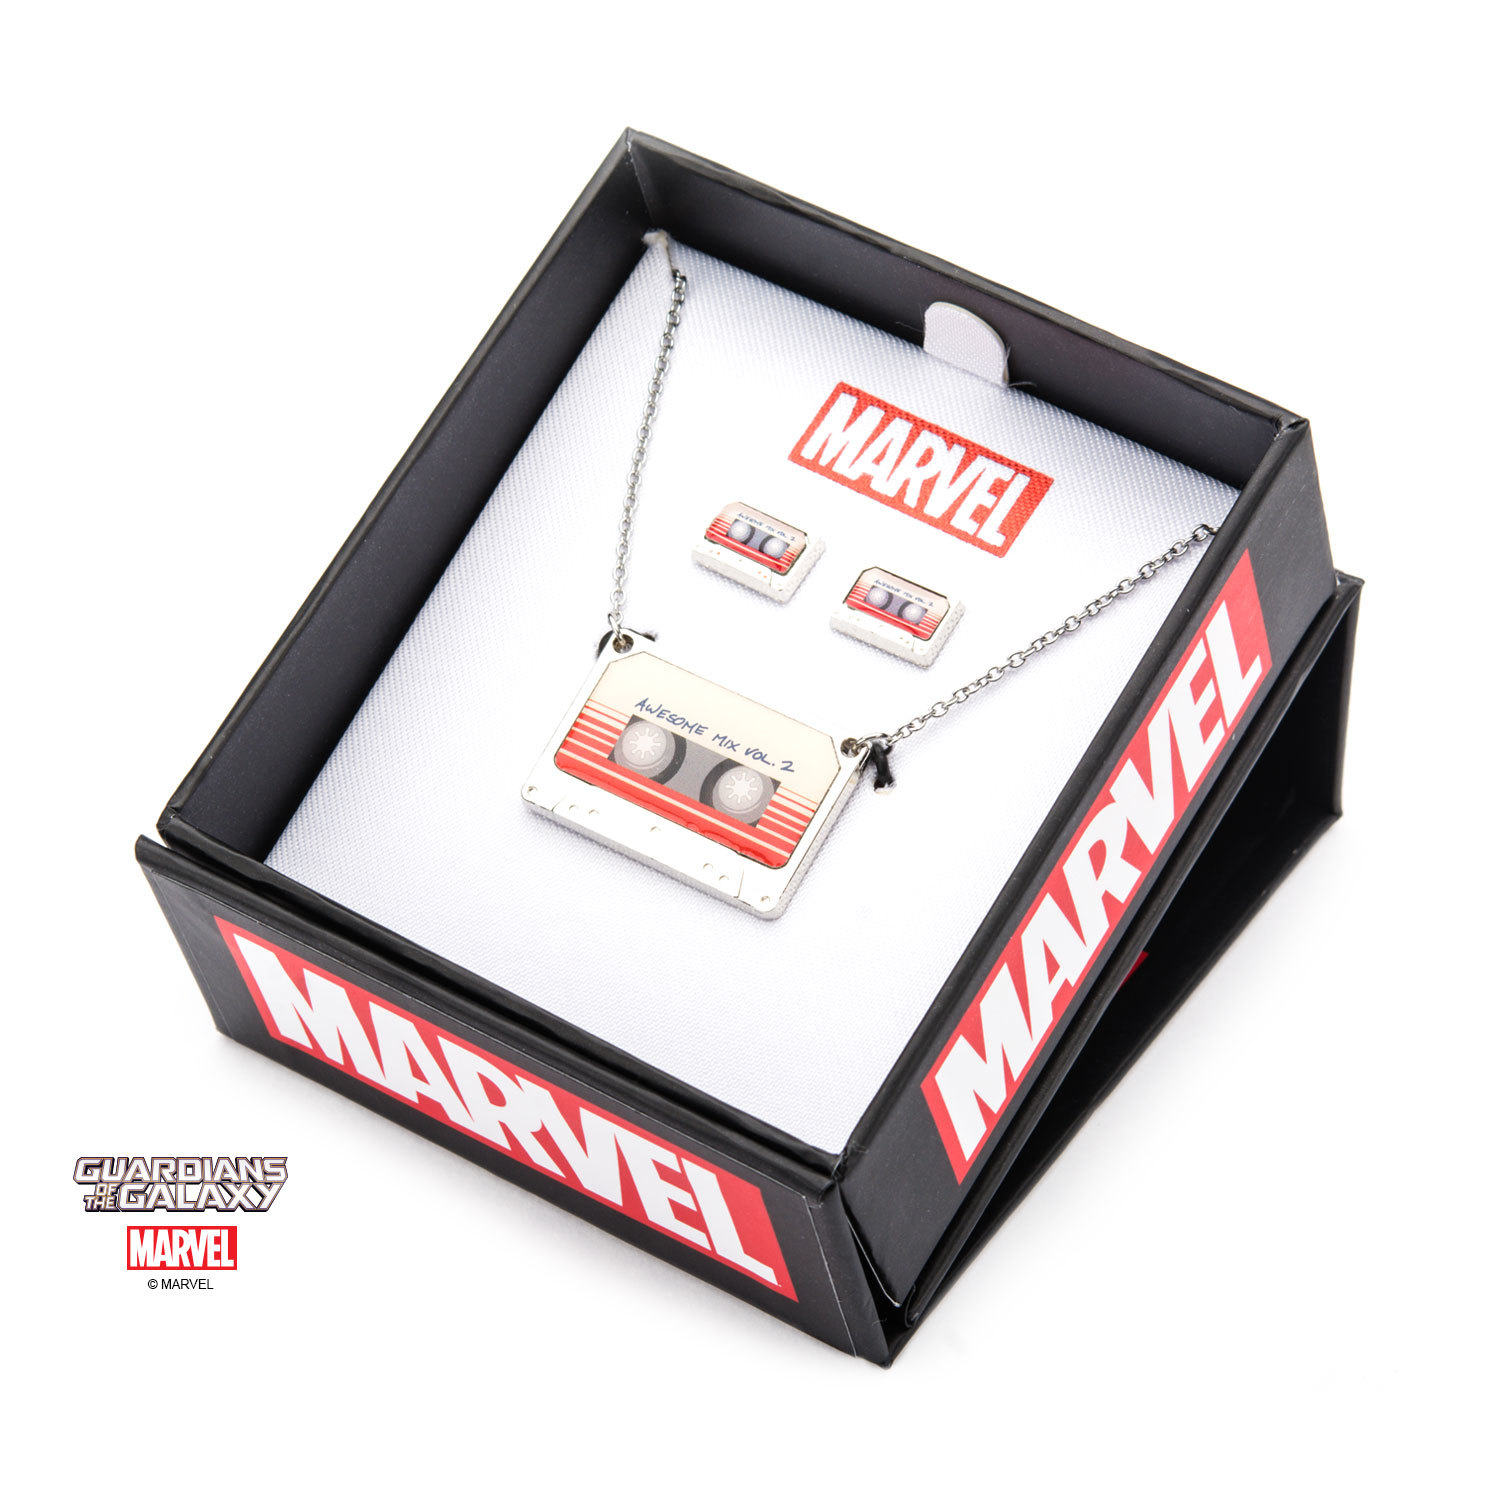 Guardians of the Galaxy: Mix-Tape - Pendant & Earrings Set image